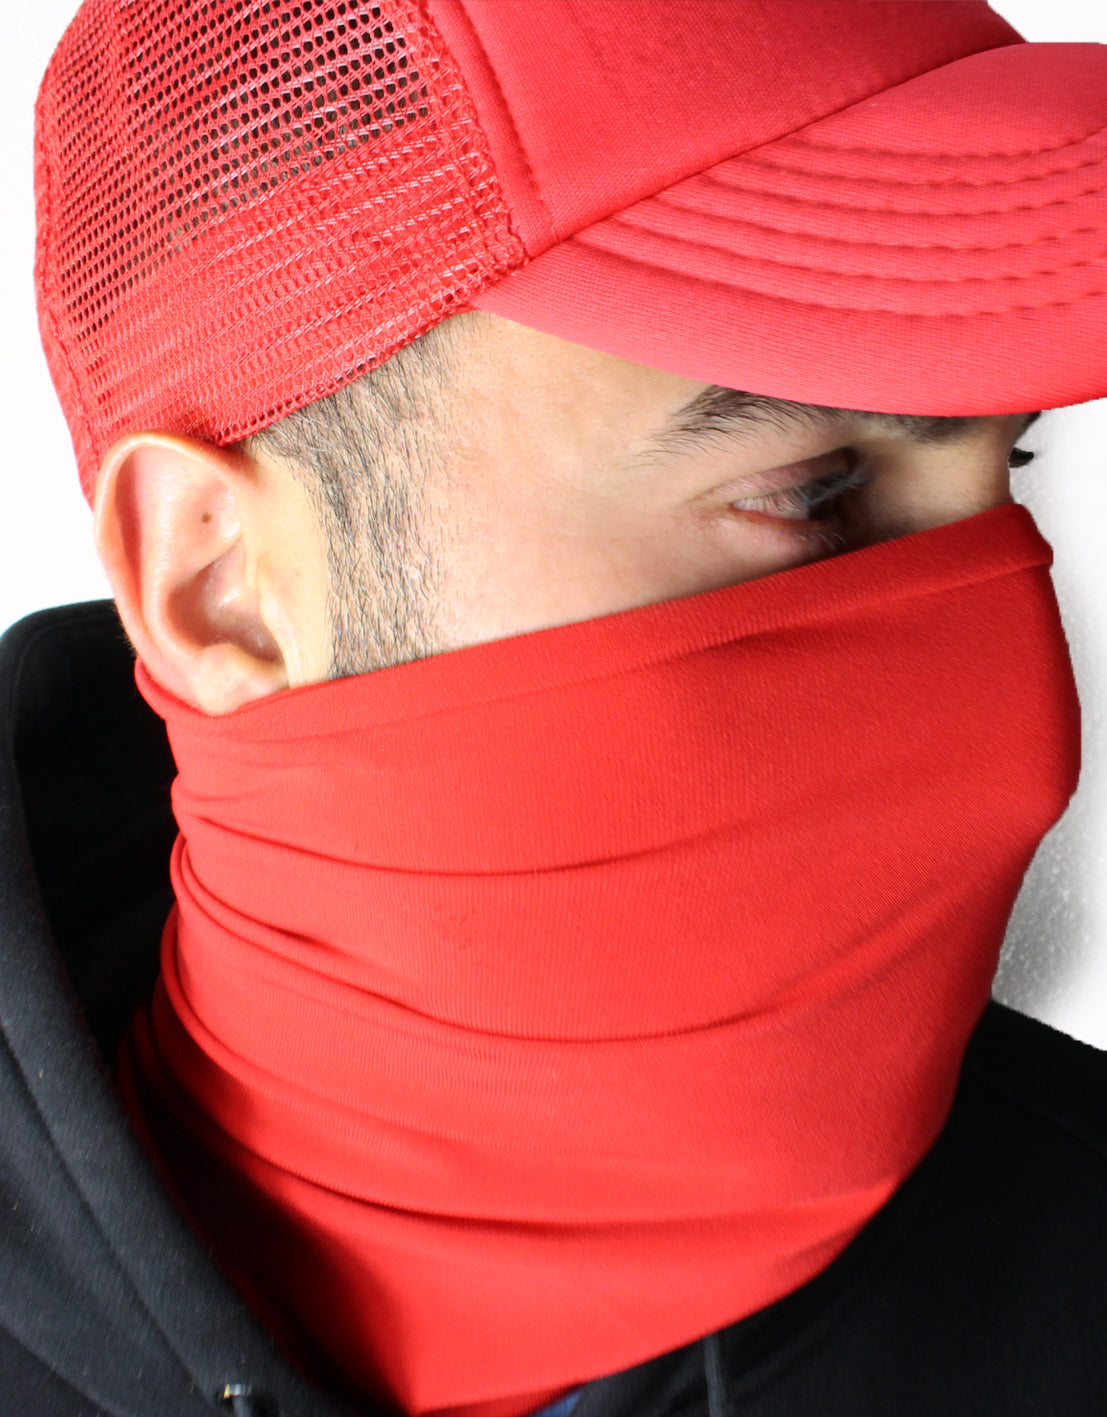 NEW Light Weight Neck Warmer/ Face covering  - Red - 2 Addictive